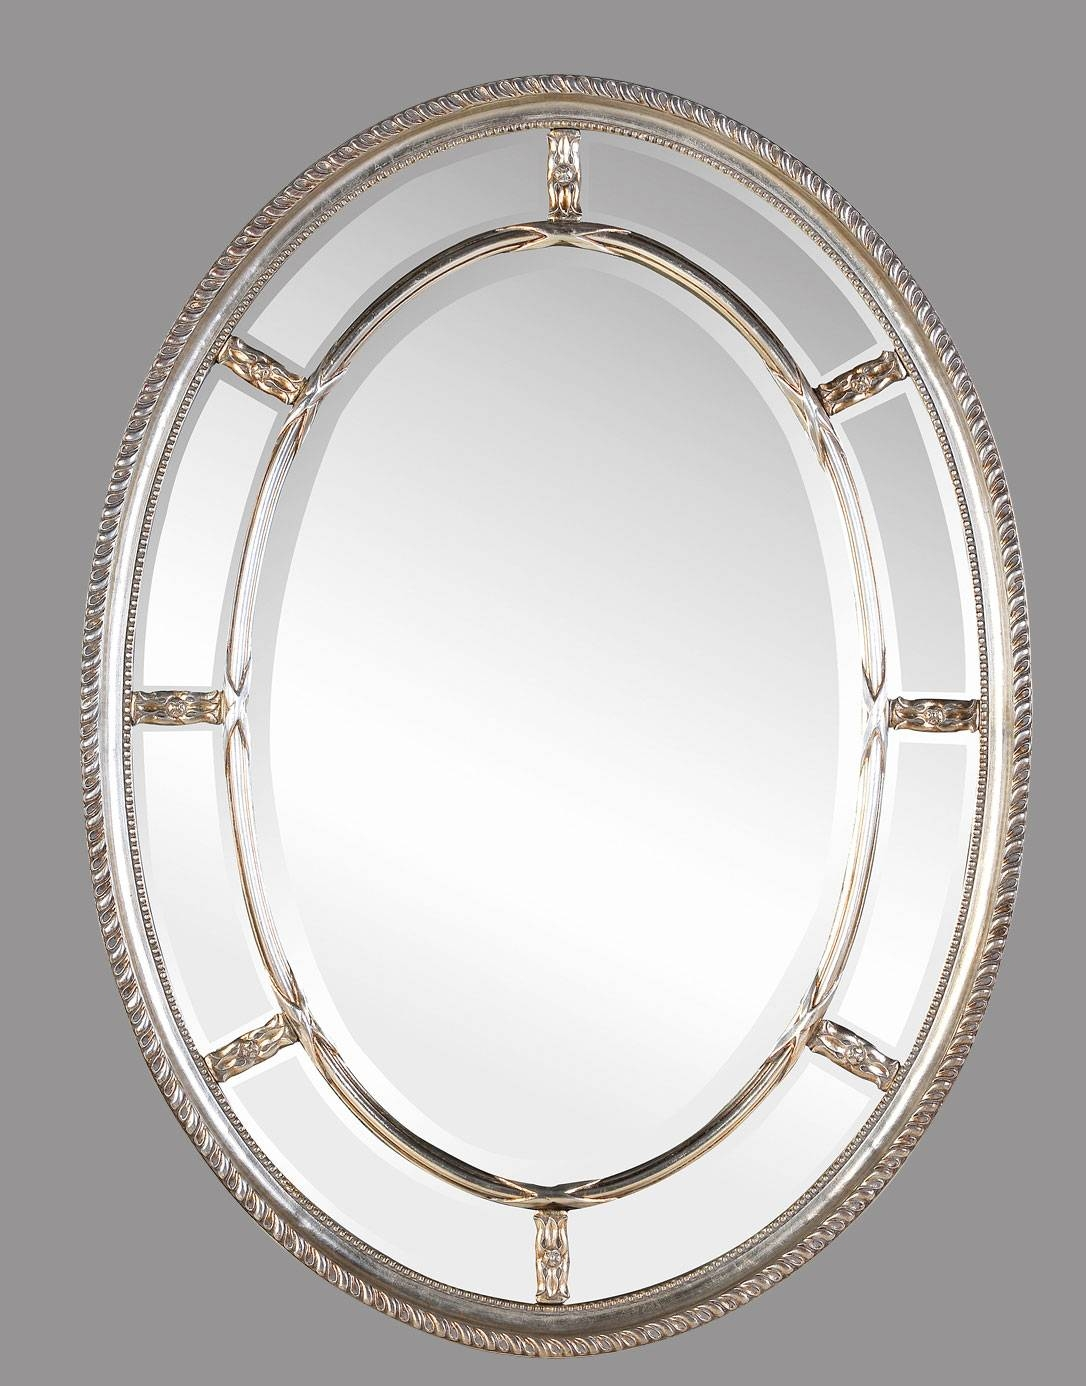 Bathroom Oval Mirrors – Add Beauty And Elegance To Your Bathroom Throughout Silver Oval Mirrors (View 4 of 25)